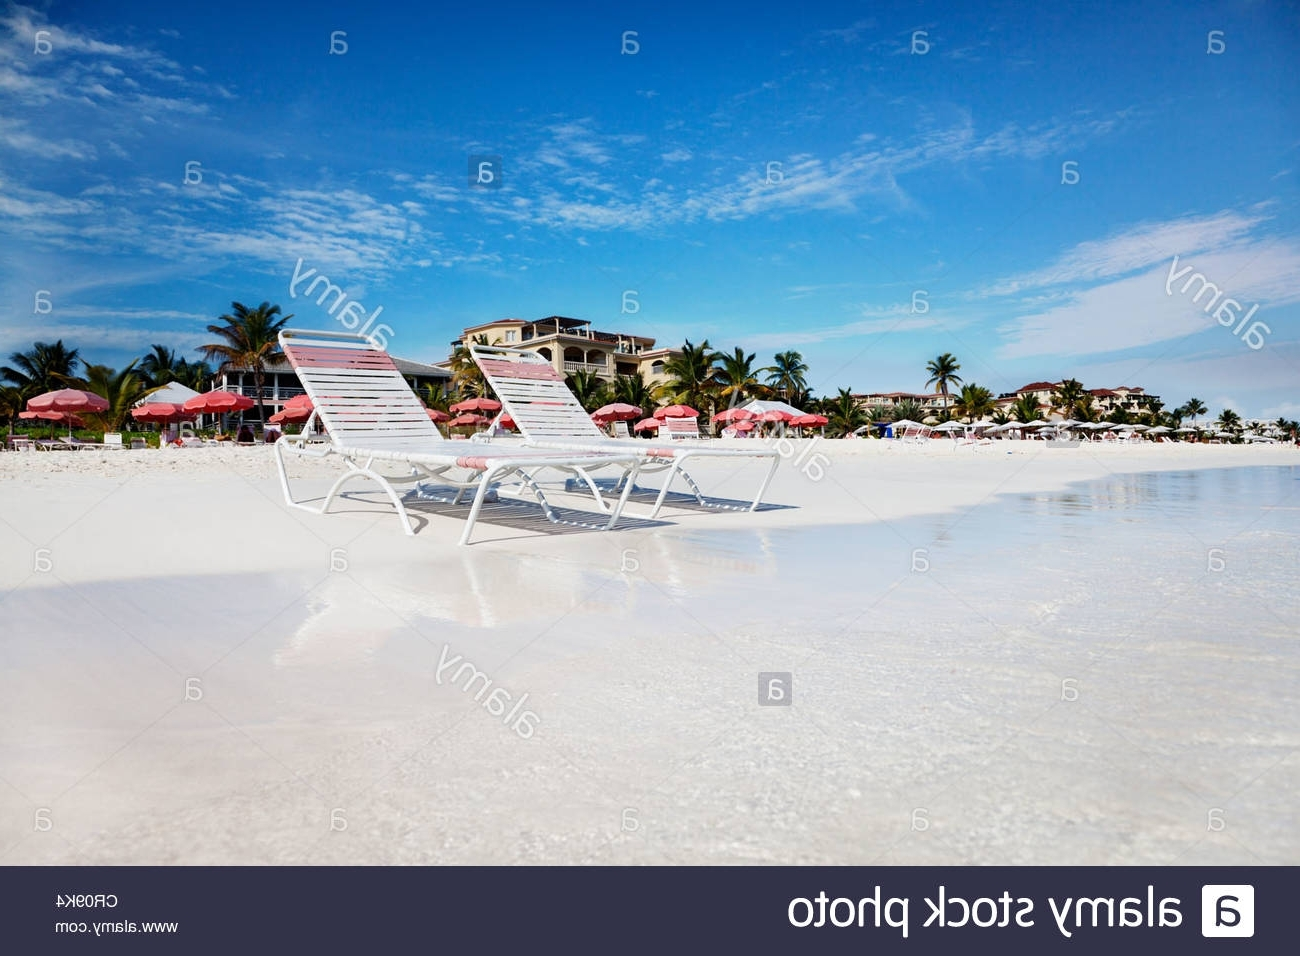 Most Current Beach Chaises At Water's Edge On The Soft White Sands Of Grace Bay Regarding Beach Chaises (View 15 of 15)